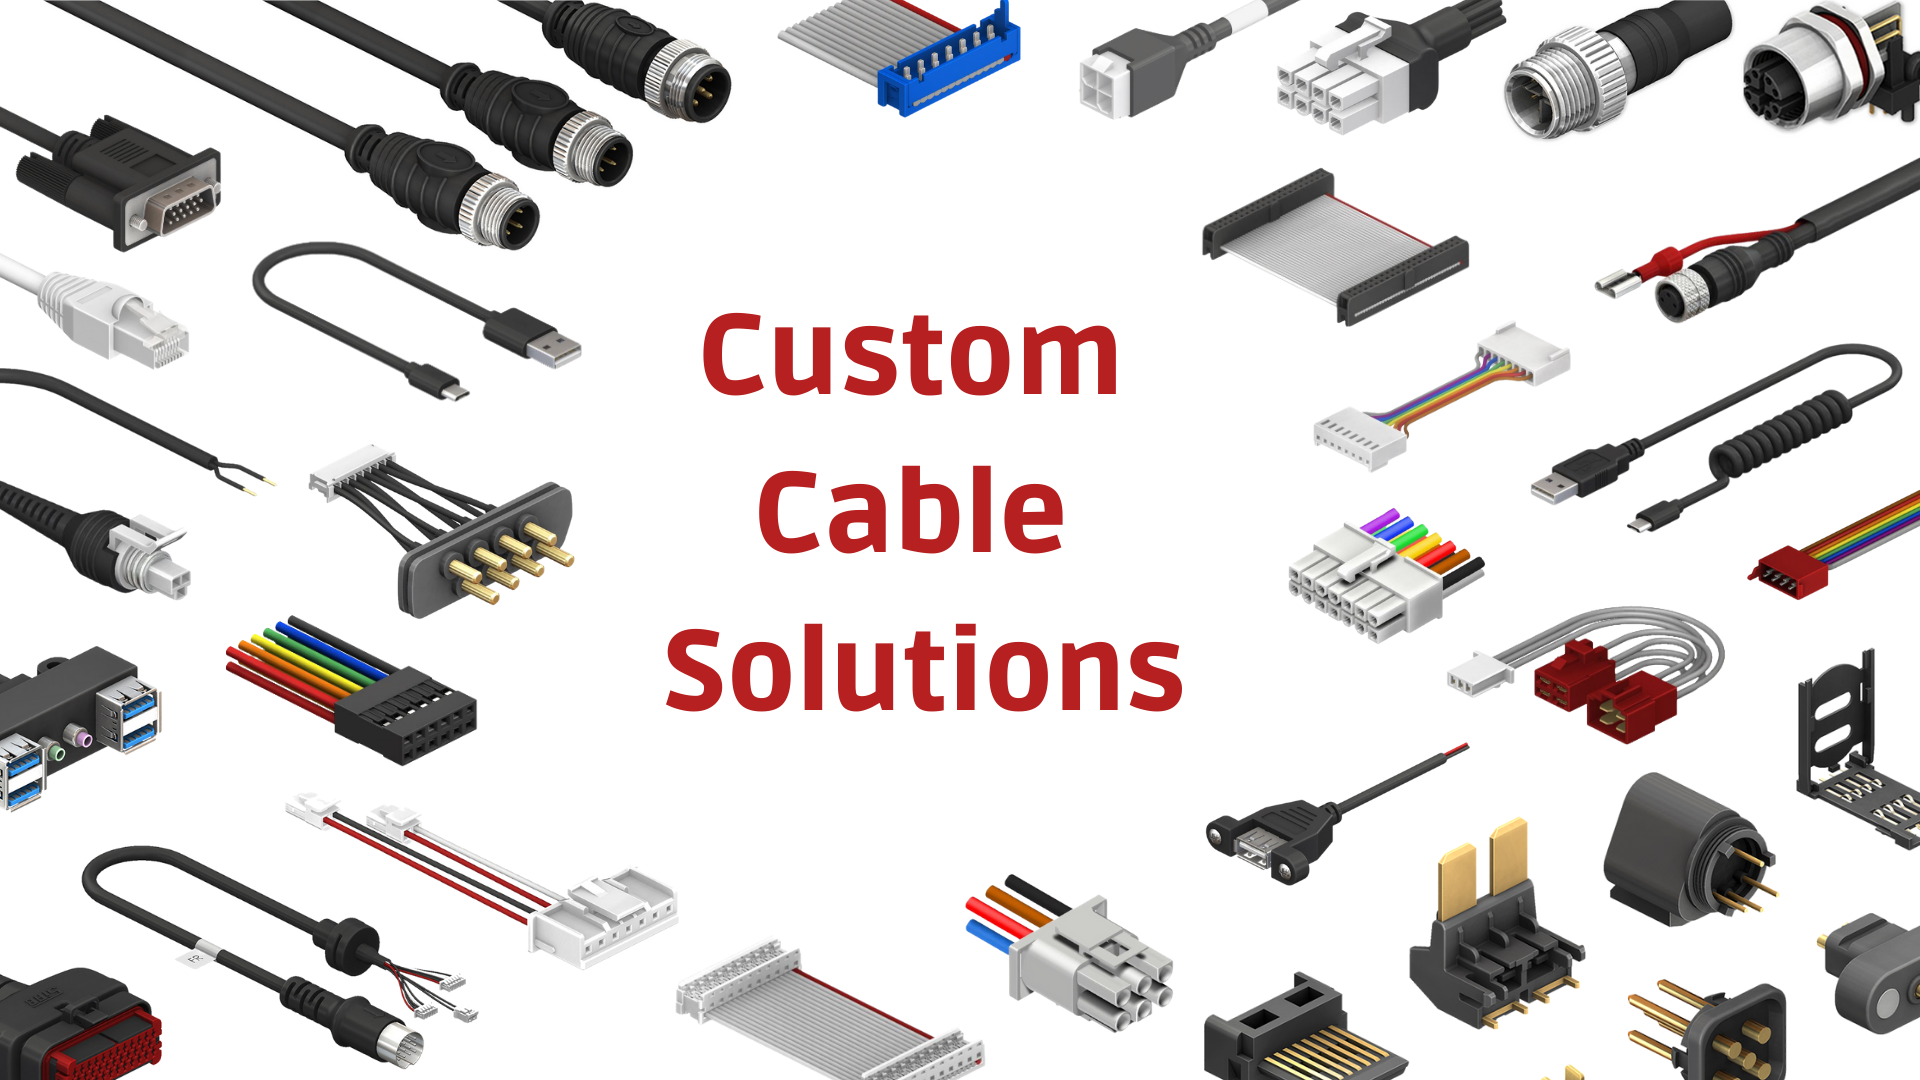 Custom Cable Solutions